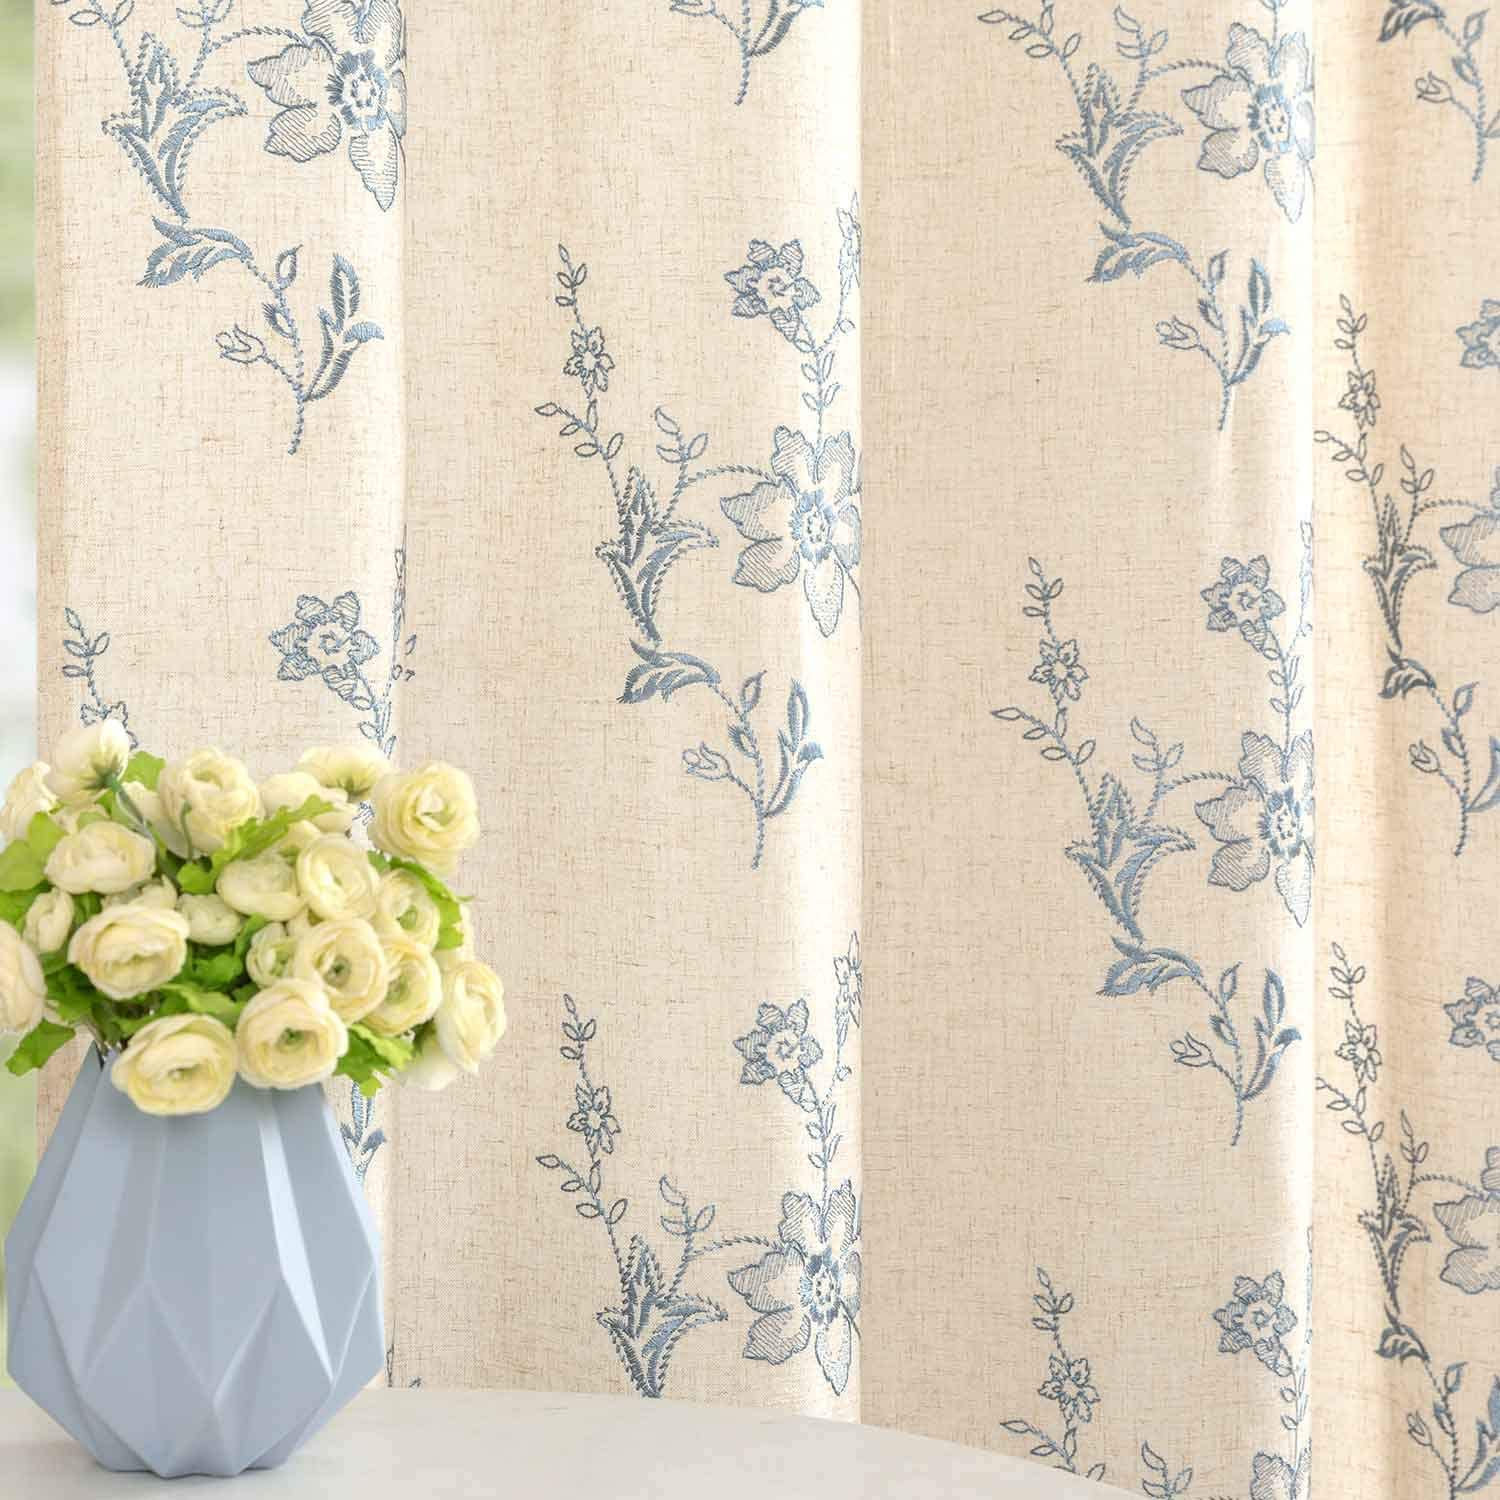 Blue Window Curtains Linen Like Ring Top for Living Room Bedroom Curtain with Floral Embroidered Design 2 Panels 84 inch